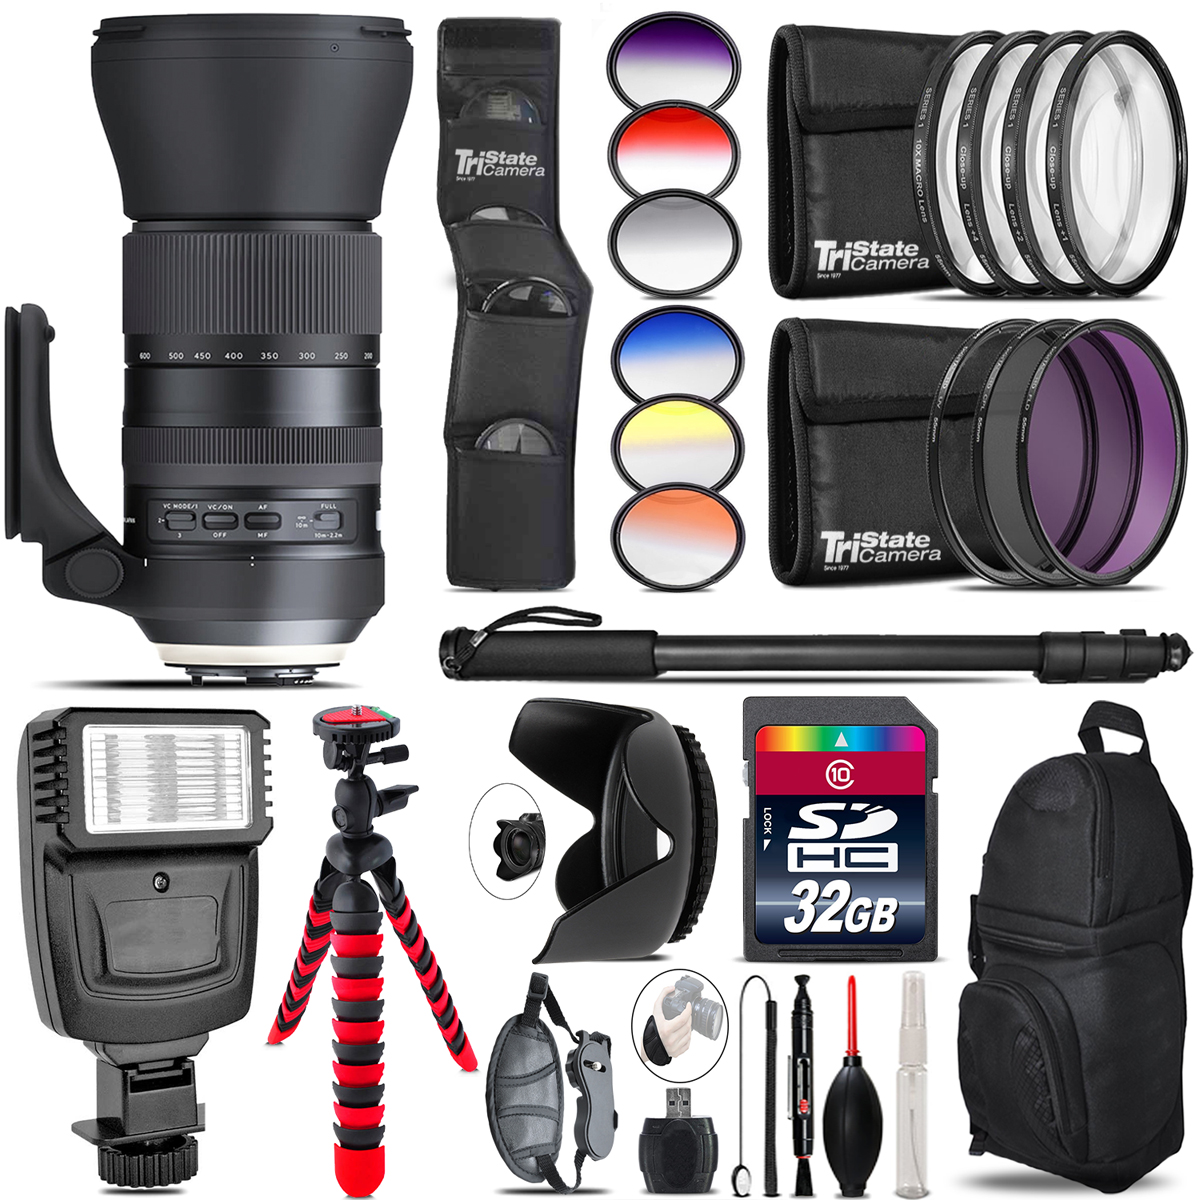 Tamron 150-600mm G2 for Nikon + Flash + Color Filter Set - 32GB Accessory Kit *FREE SHIPPING*